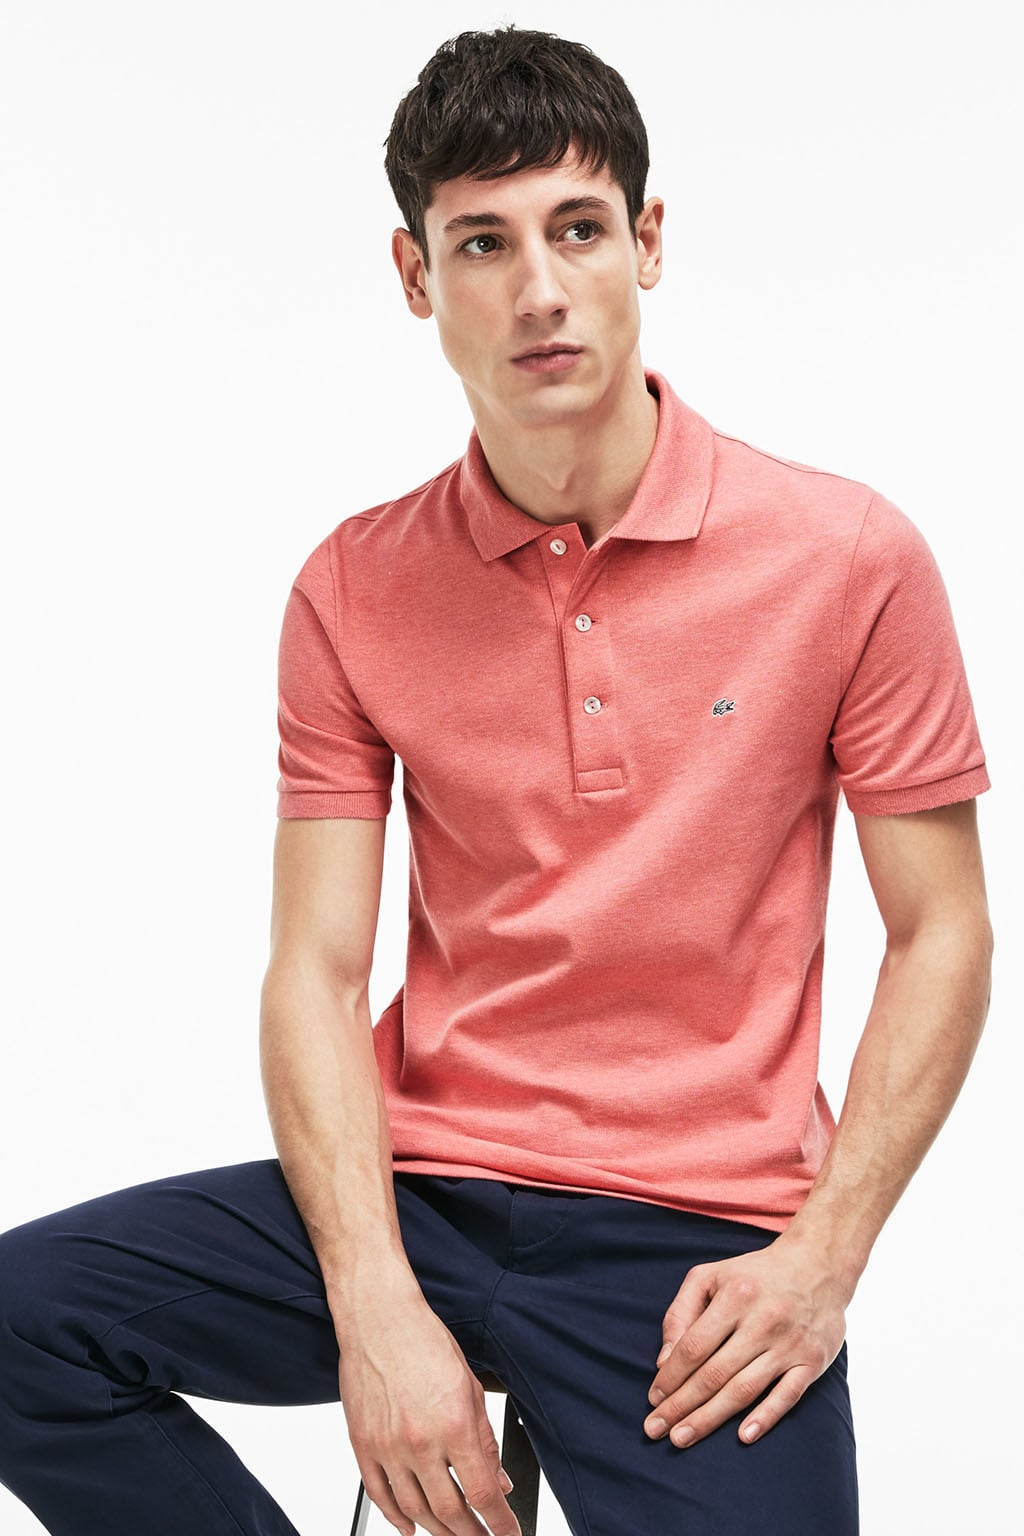 bad5d944cf Lacoste slim fit polo hippy chine - 3 - Lacoste slim fit polo hippy chine